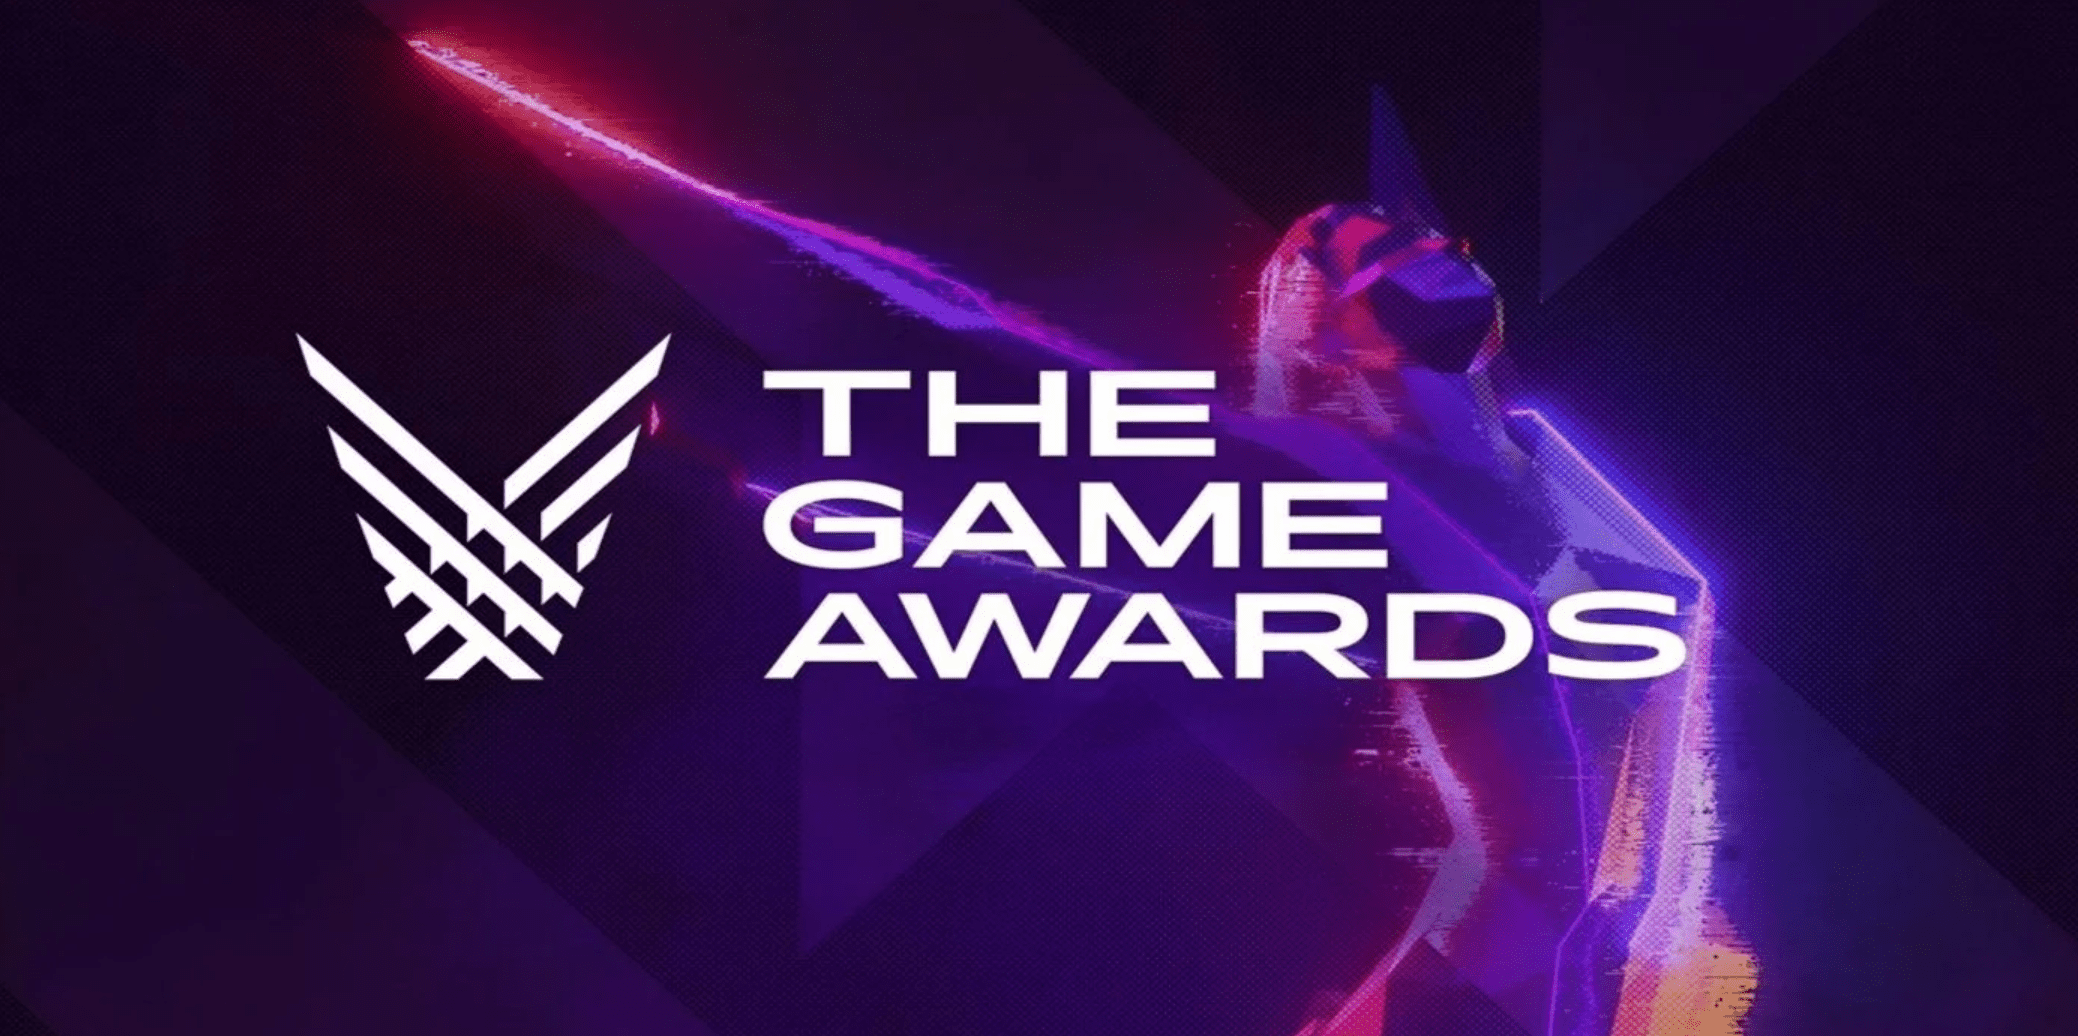 Gameawards2020